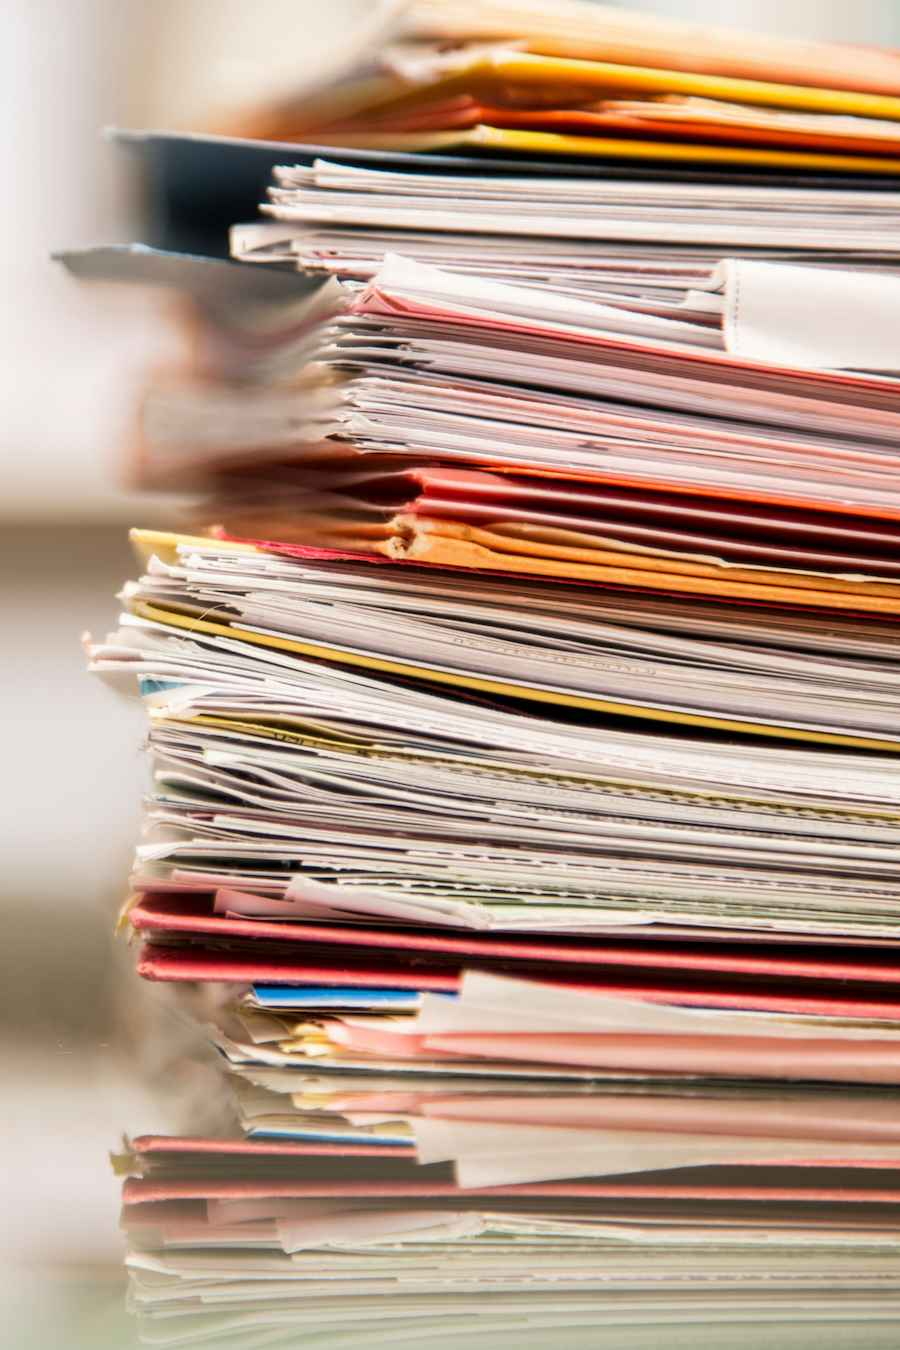 0123 - Pile of papers - Whitepepaper